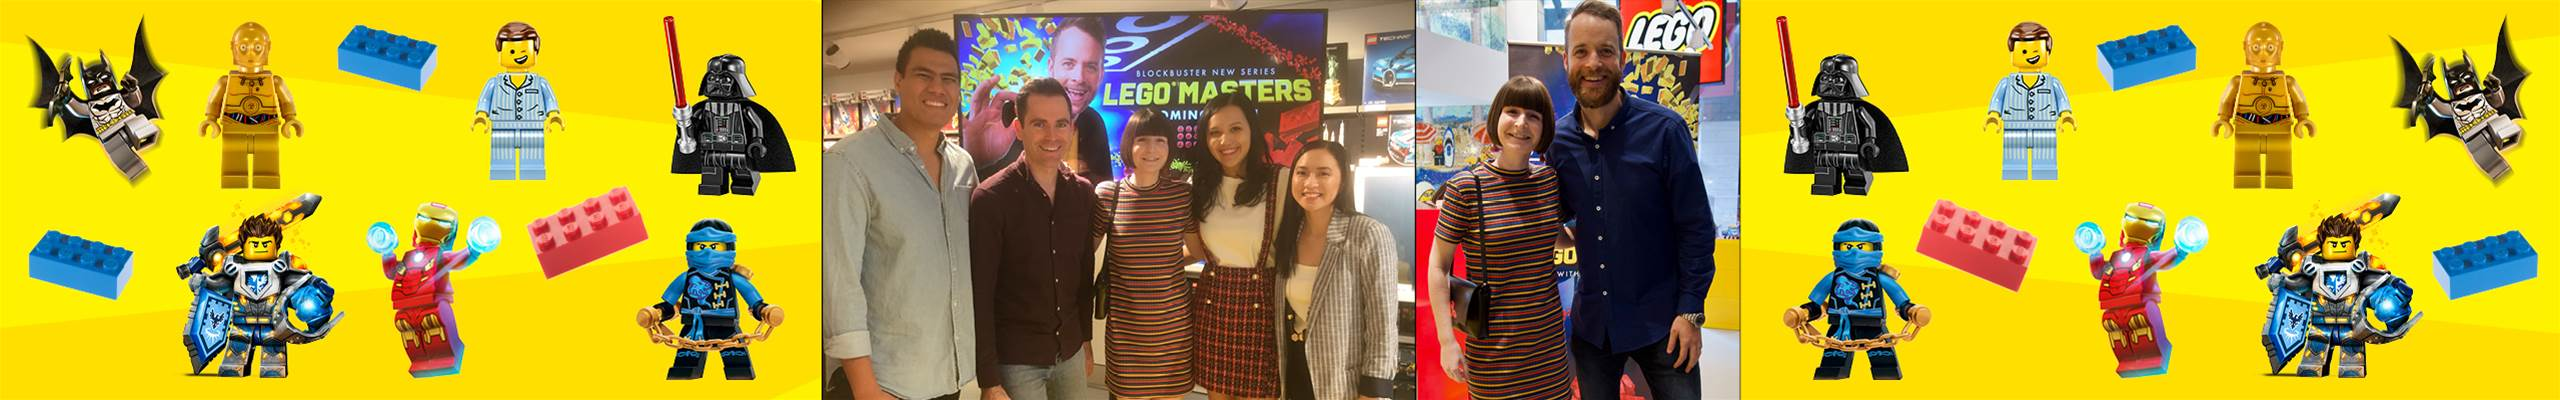 MEETING LEGO MASTERS